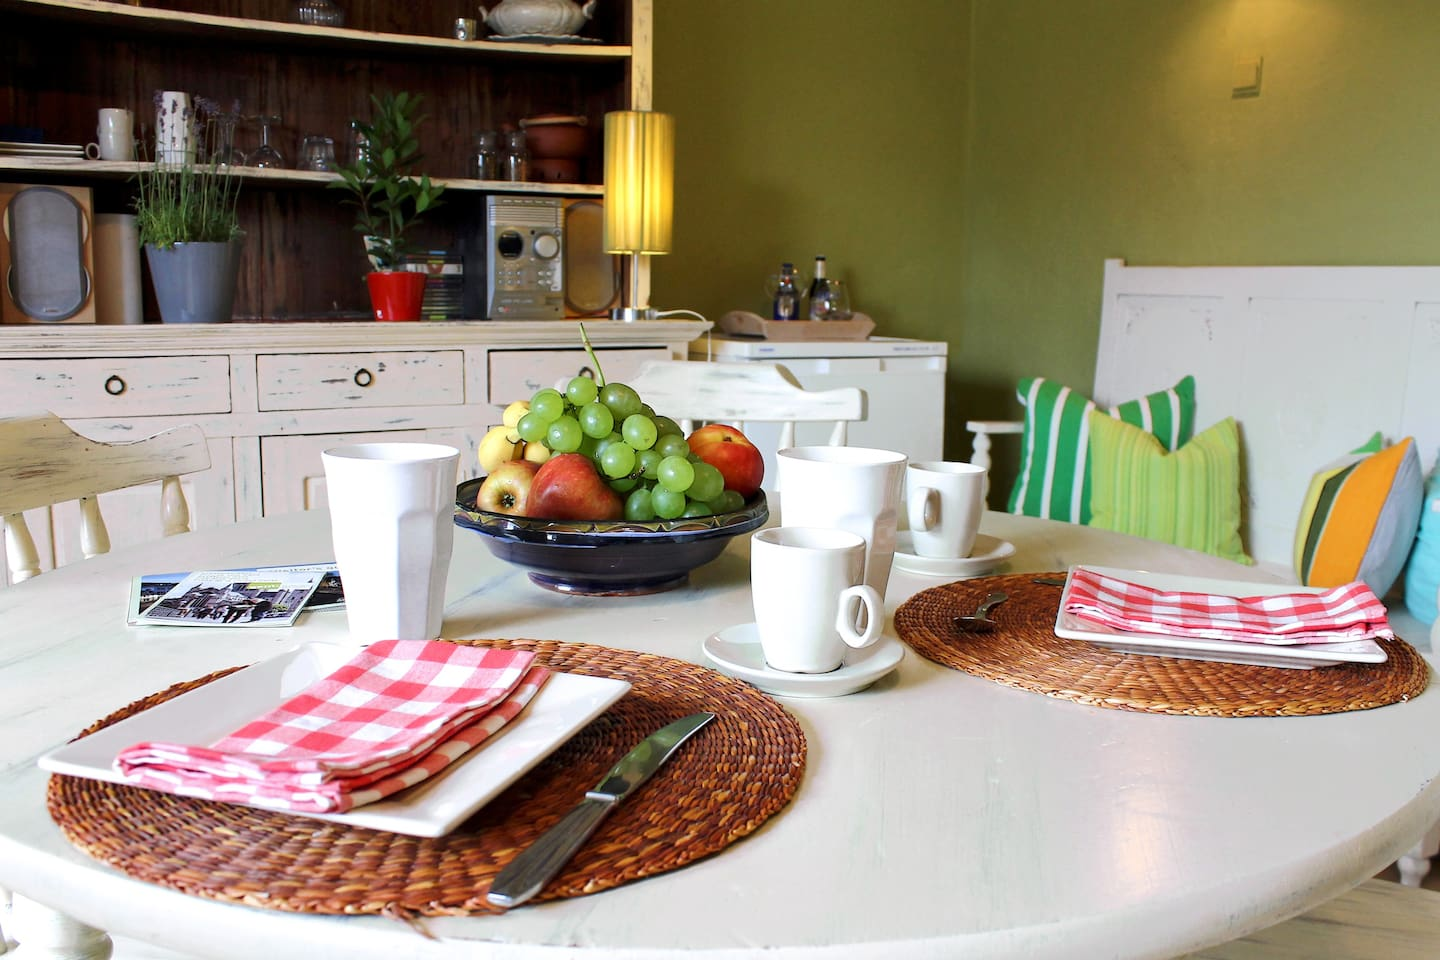 Enjoy Your Breakfast in a sunlit kitchen. Nice view all year through